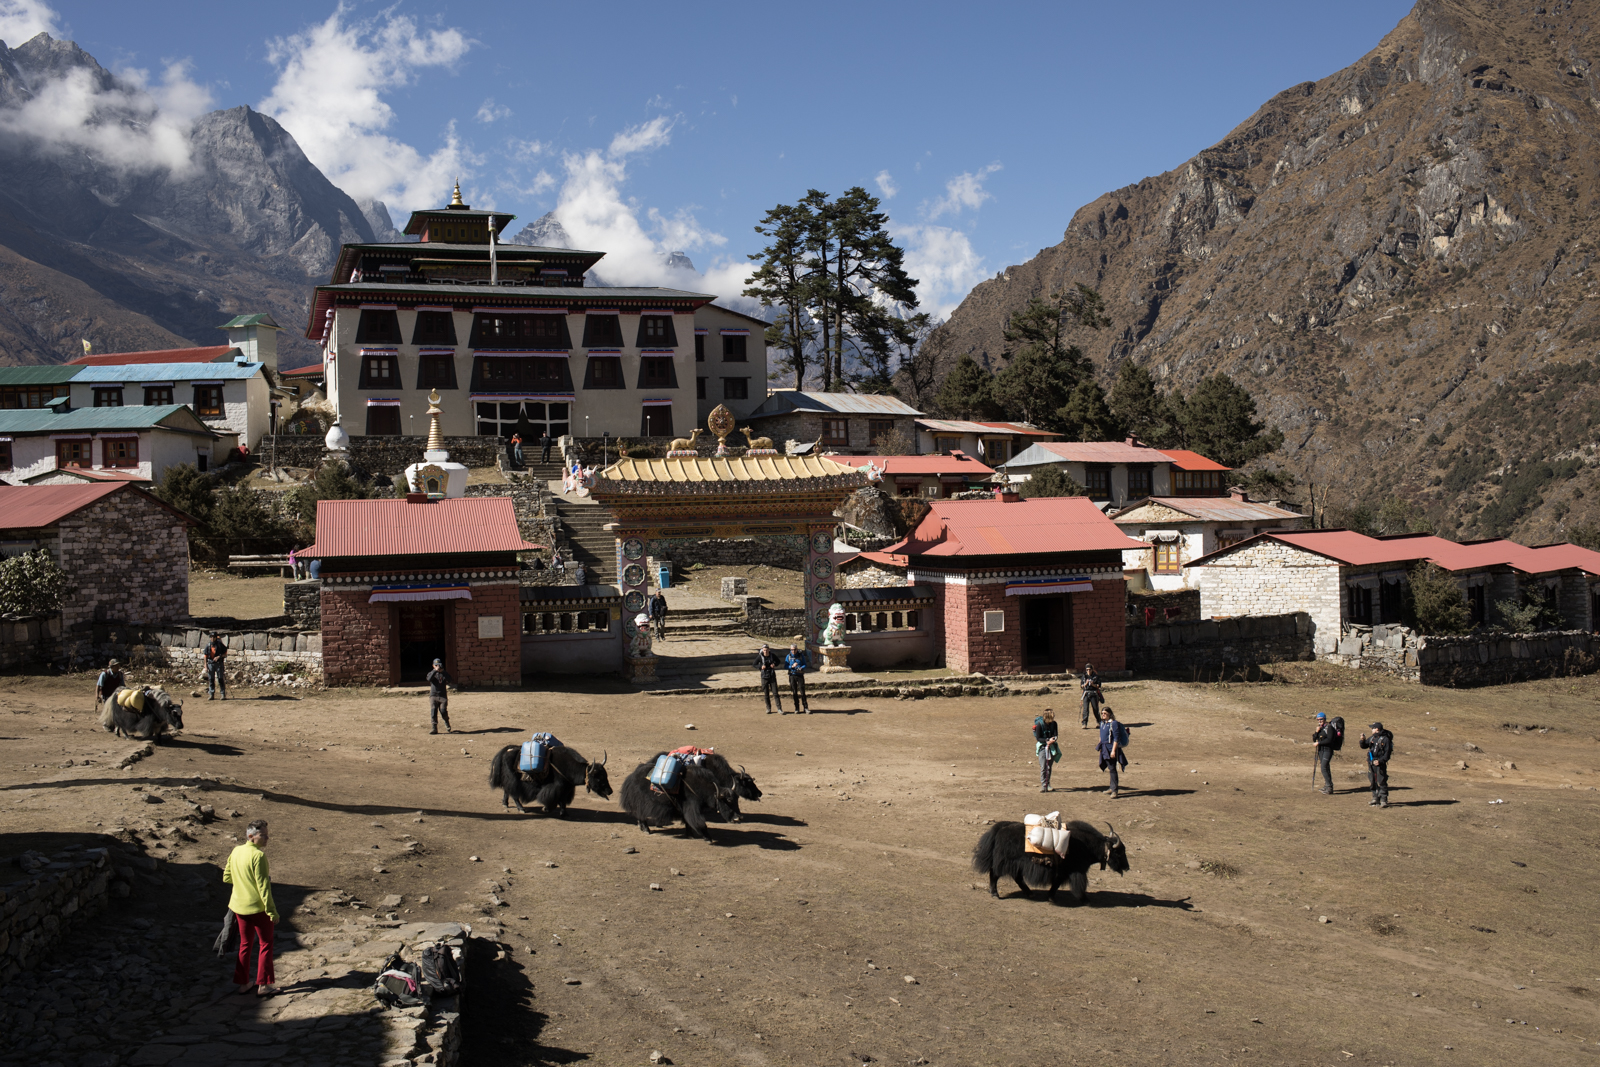 As we hiked higher in elevation, the pack animals changed from the cow-yak hybrid Dzo, to yaks.  A group of yak carry supplies through the Tengboche village in front of the renovated Tengboche Monistary.